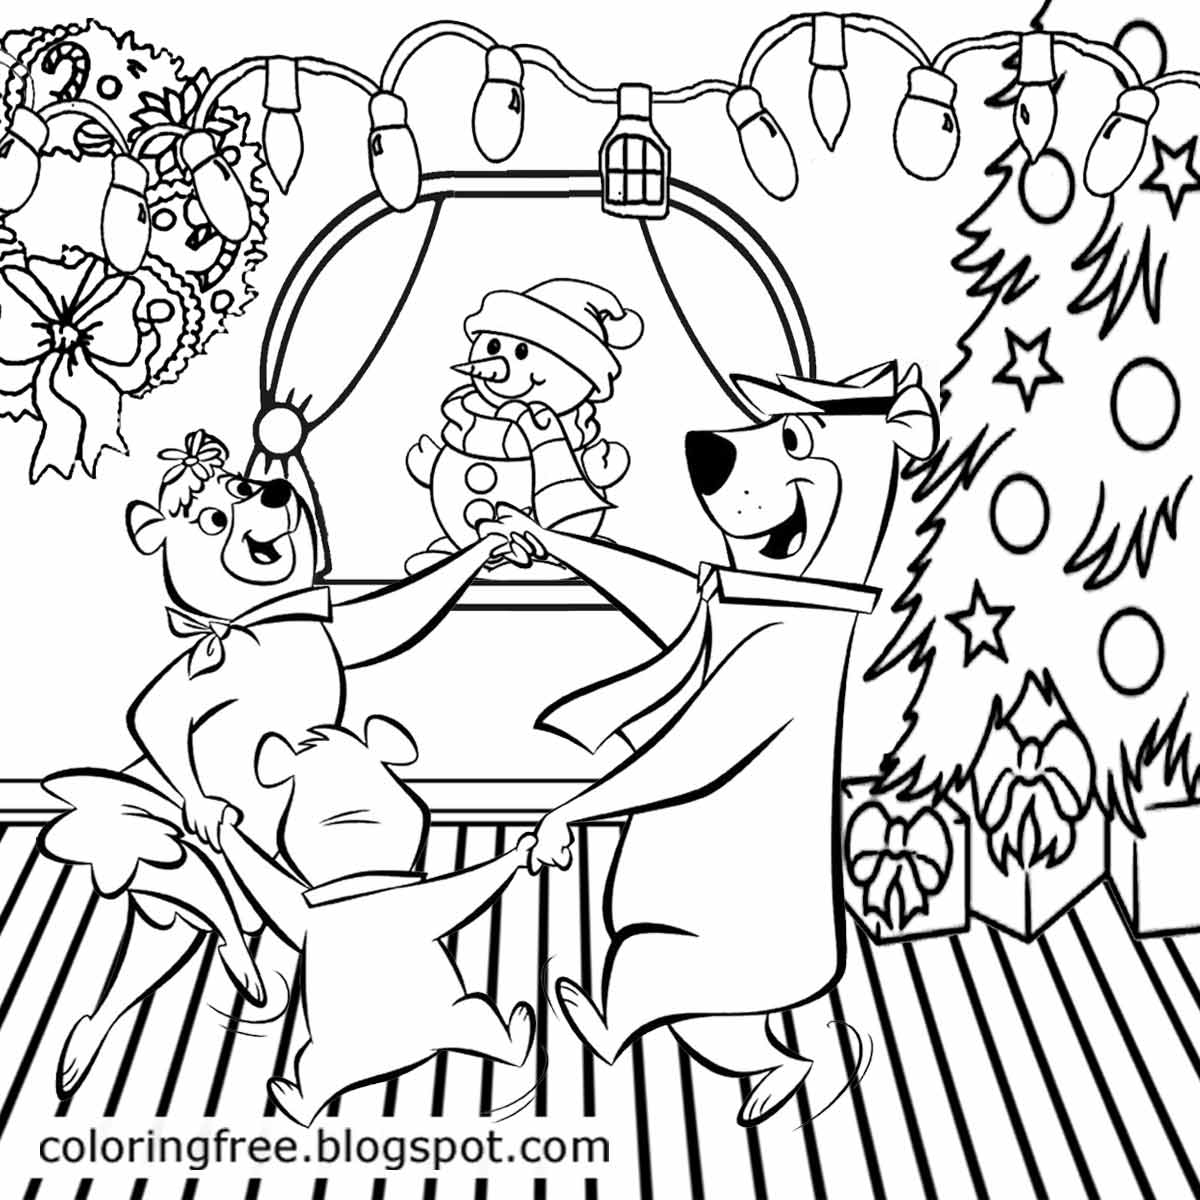 Yogi Bear Coloring Pages Us Campground Kids Cartoon Characters - Kids-coloring-pictures